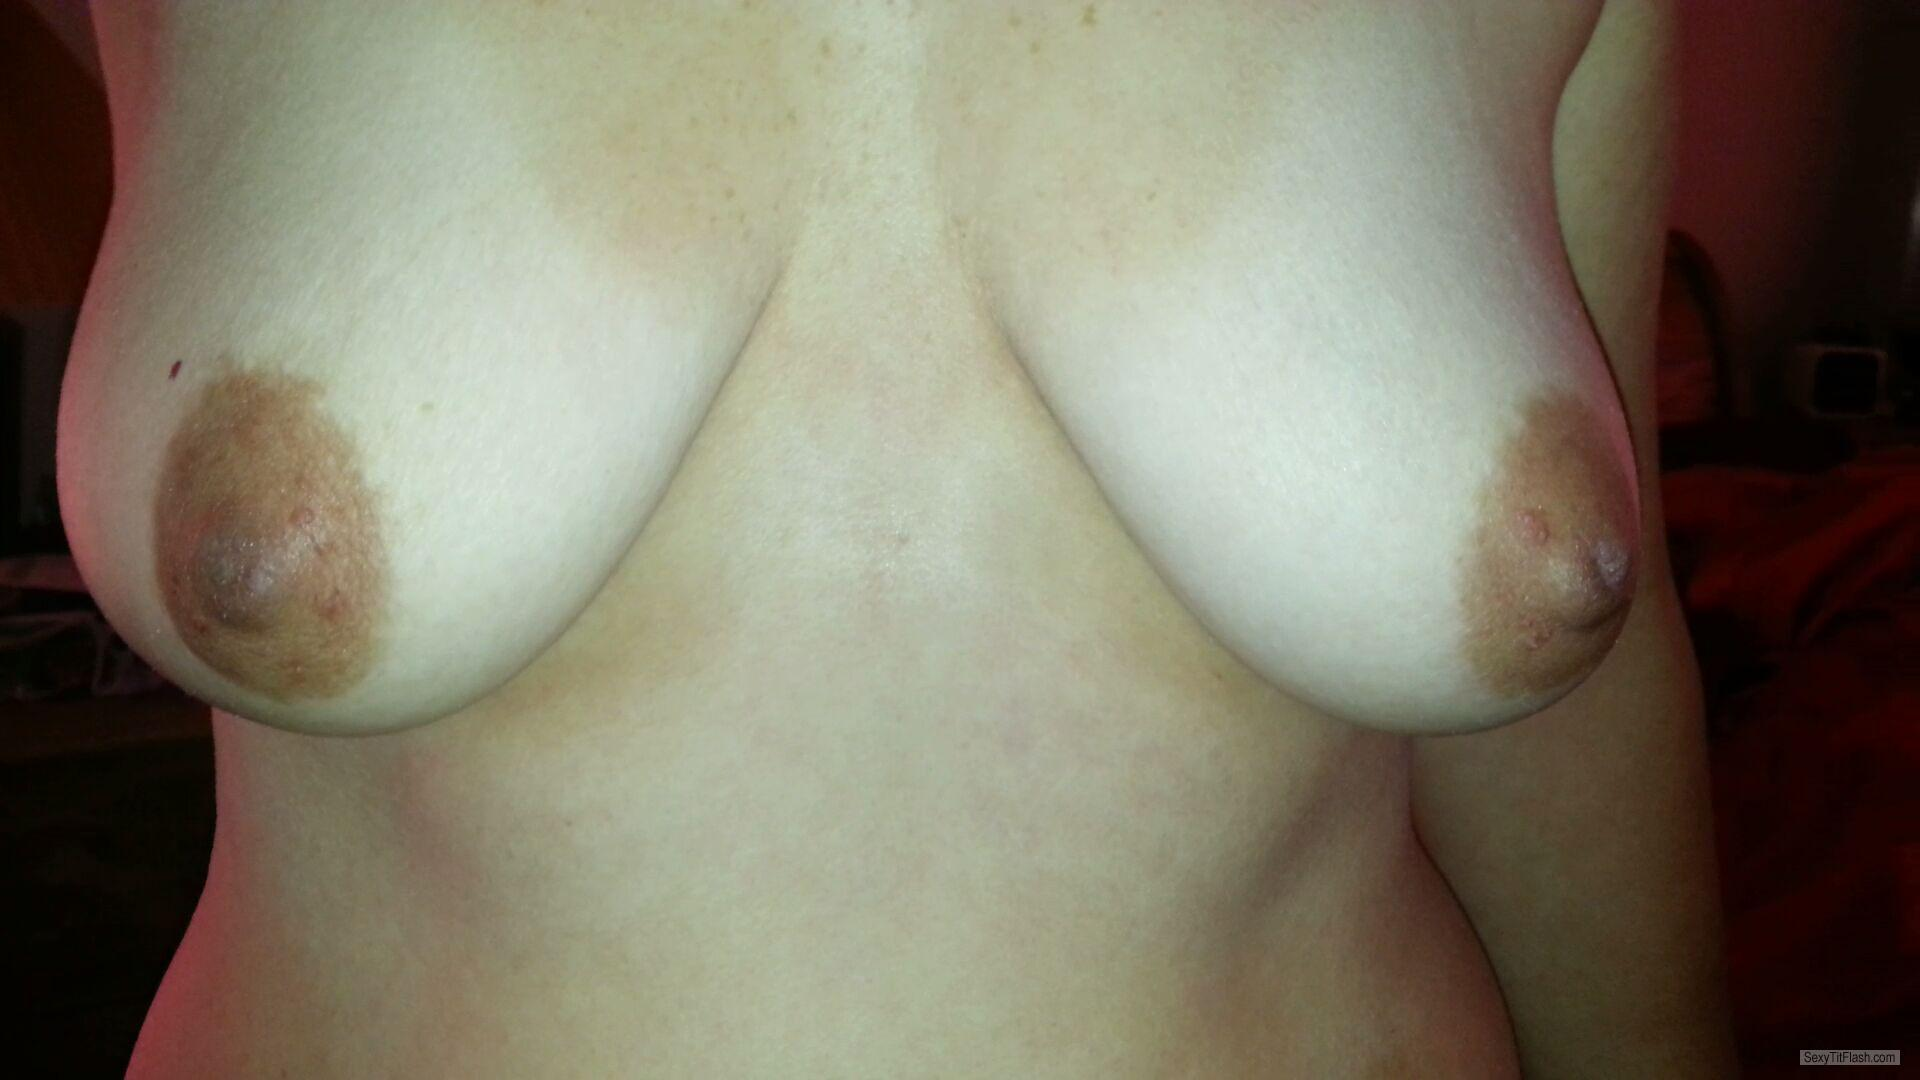 Tit Flash: Wife's Medium Tits - FYI from United States